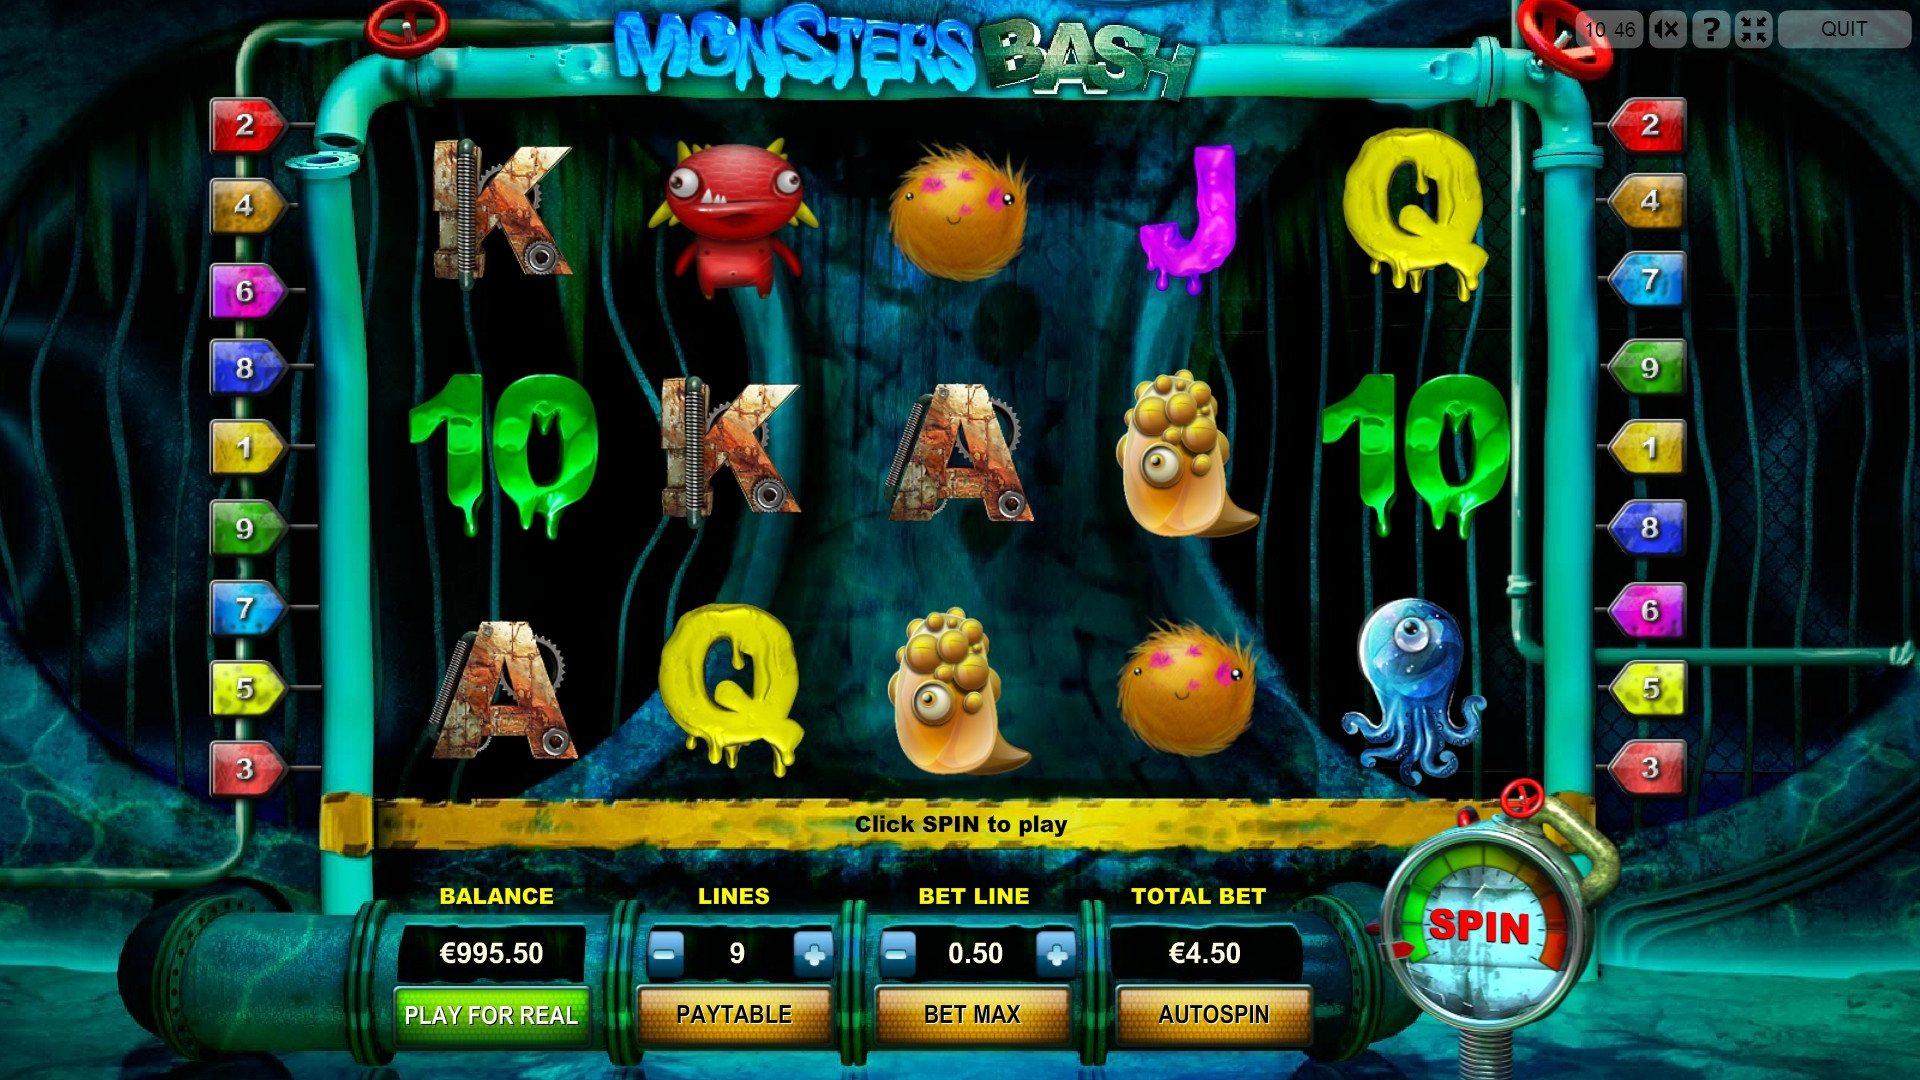 Monsters Bash (Monsters Bash) from category Slots